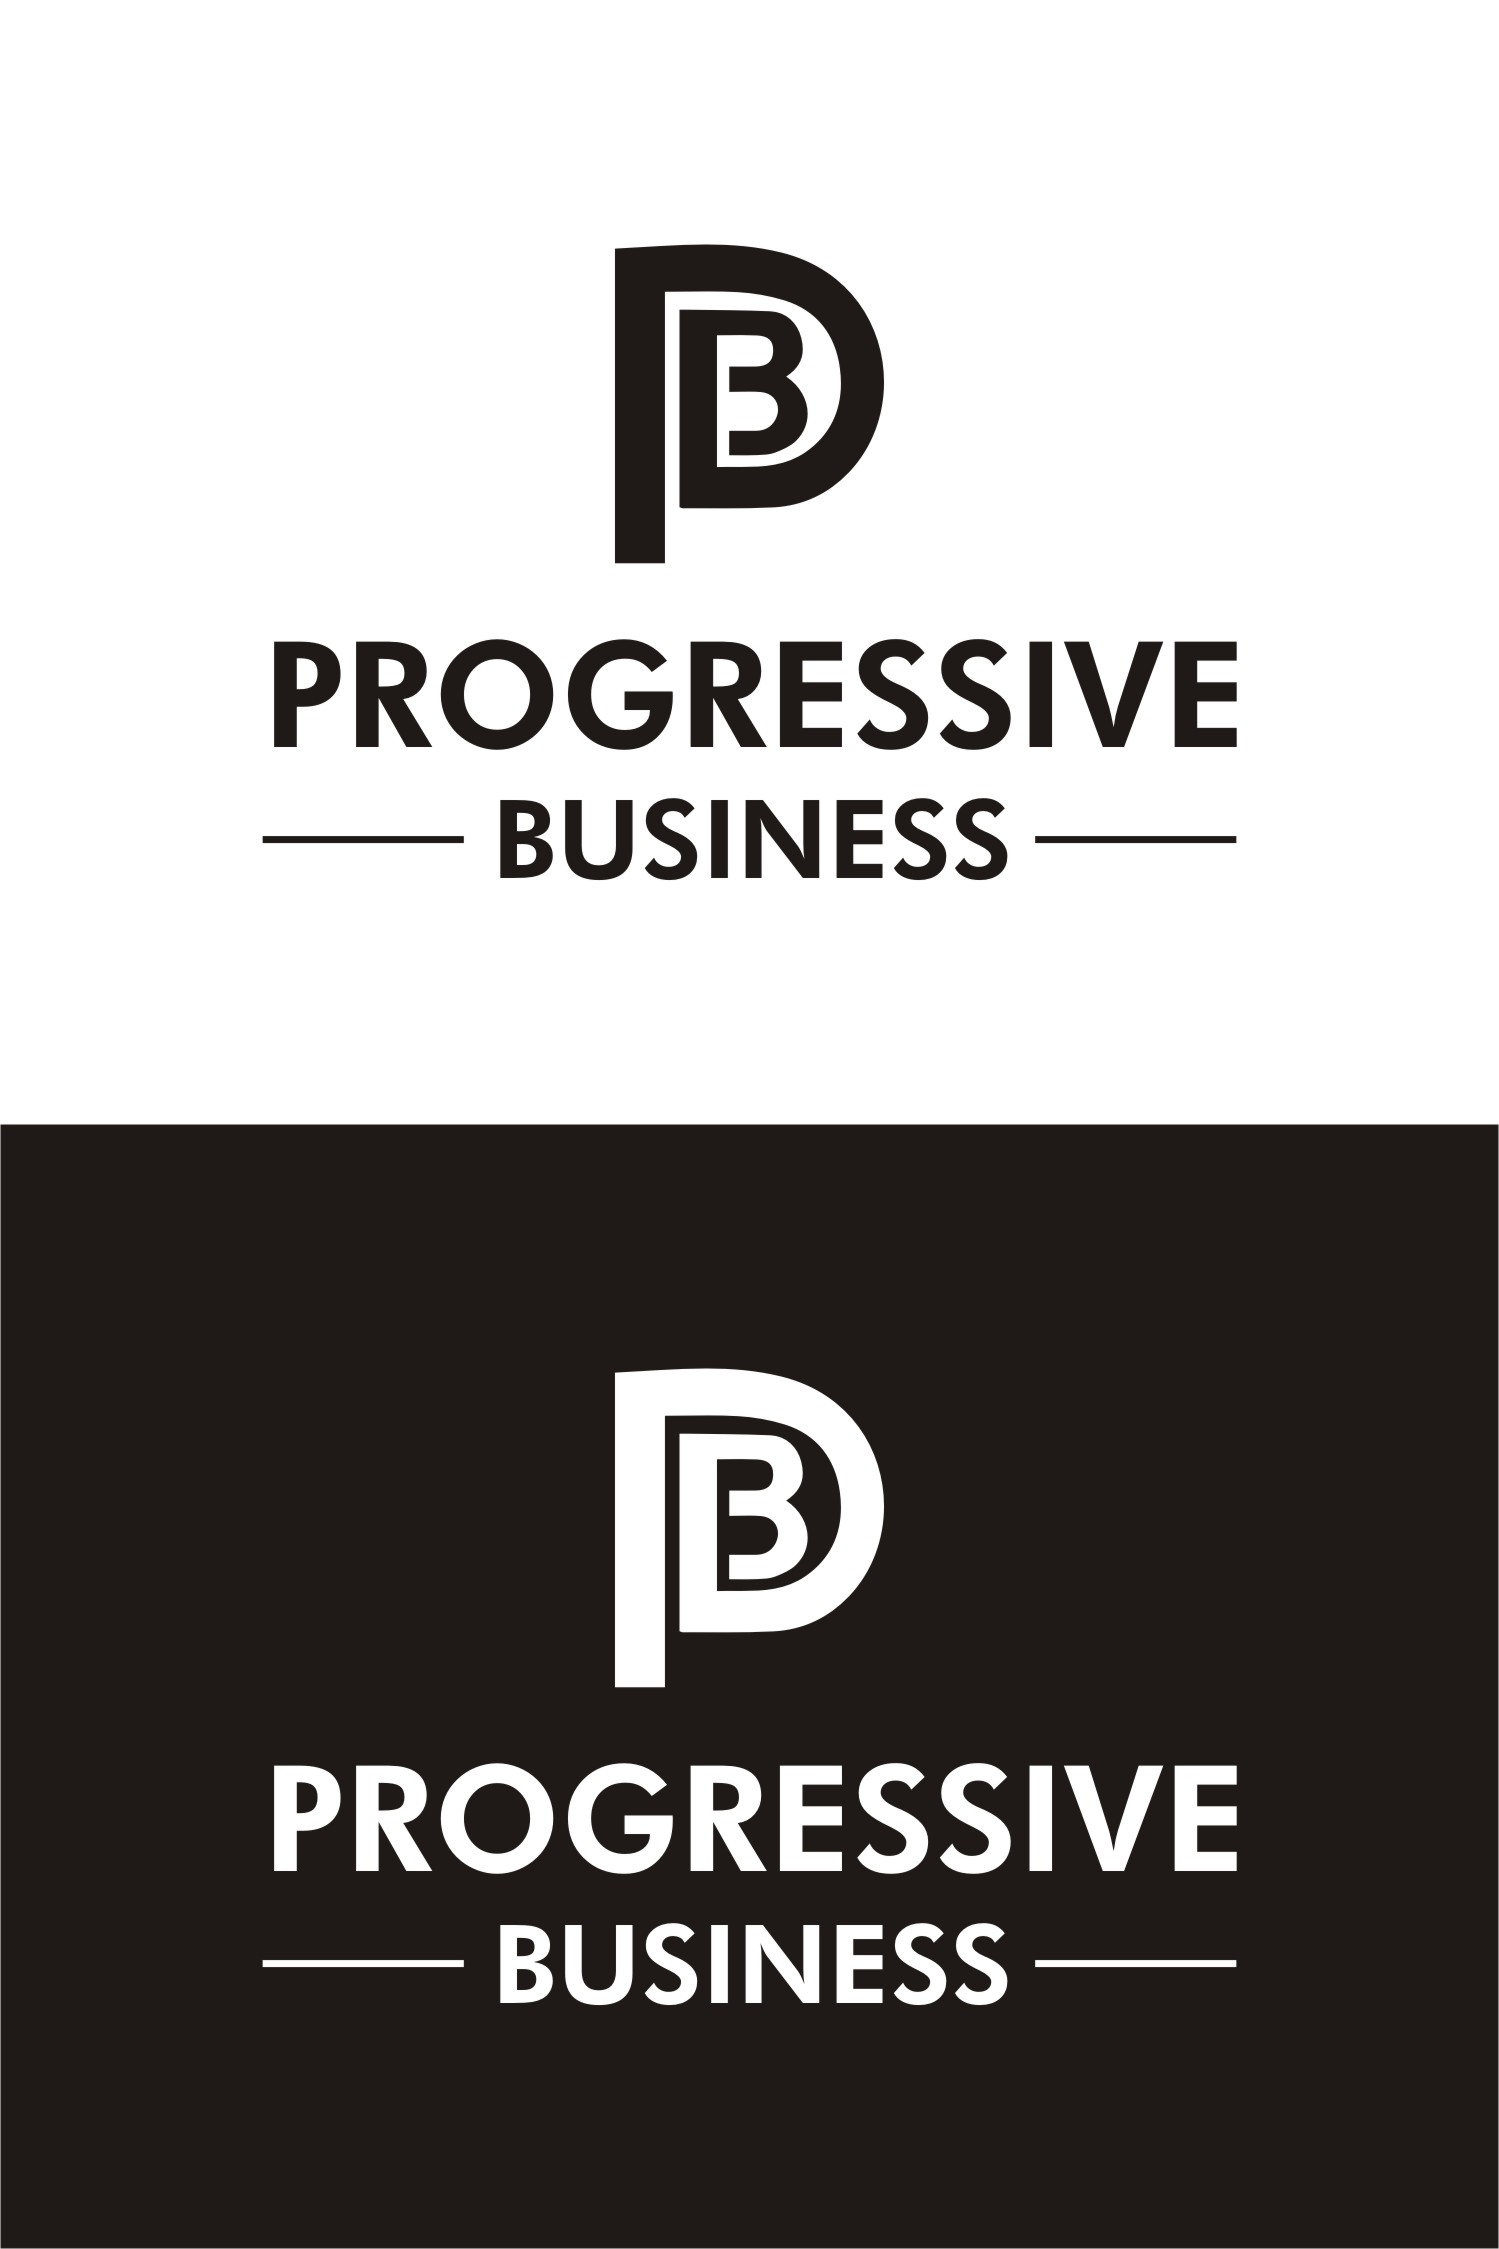 Logo Design by I graphics GRAPHICS - Entry No. 193 in the Logo Design Contest Captivating Logo Design for Progressive Business.